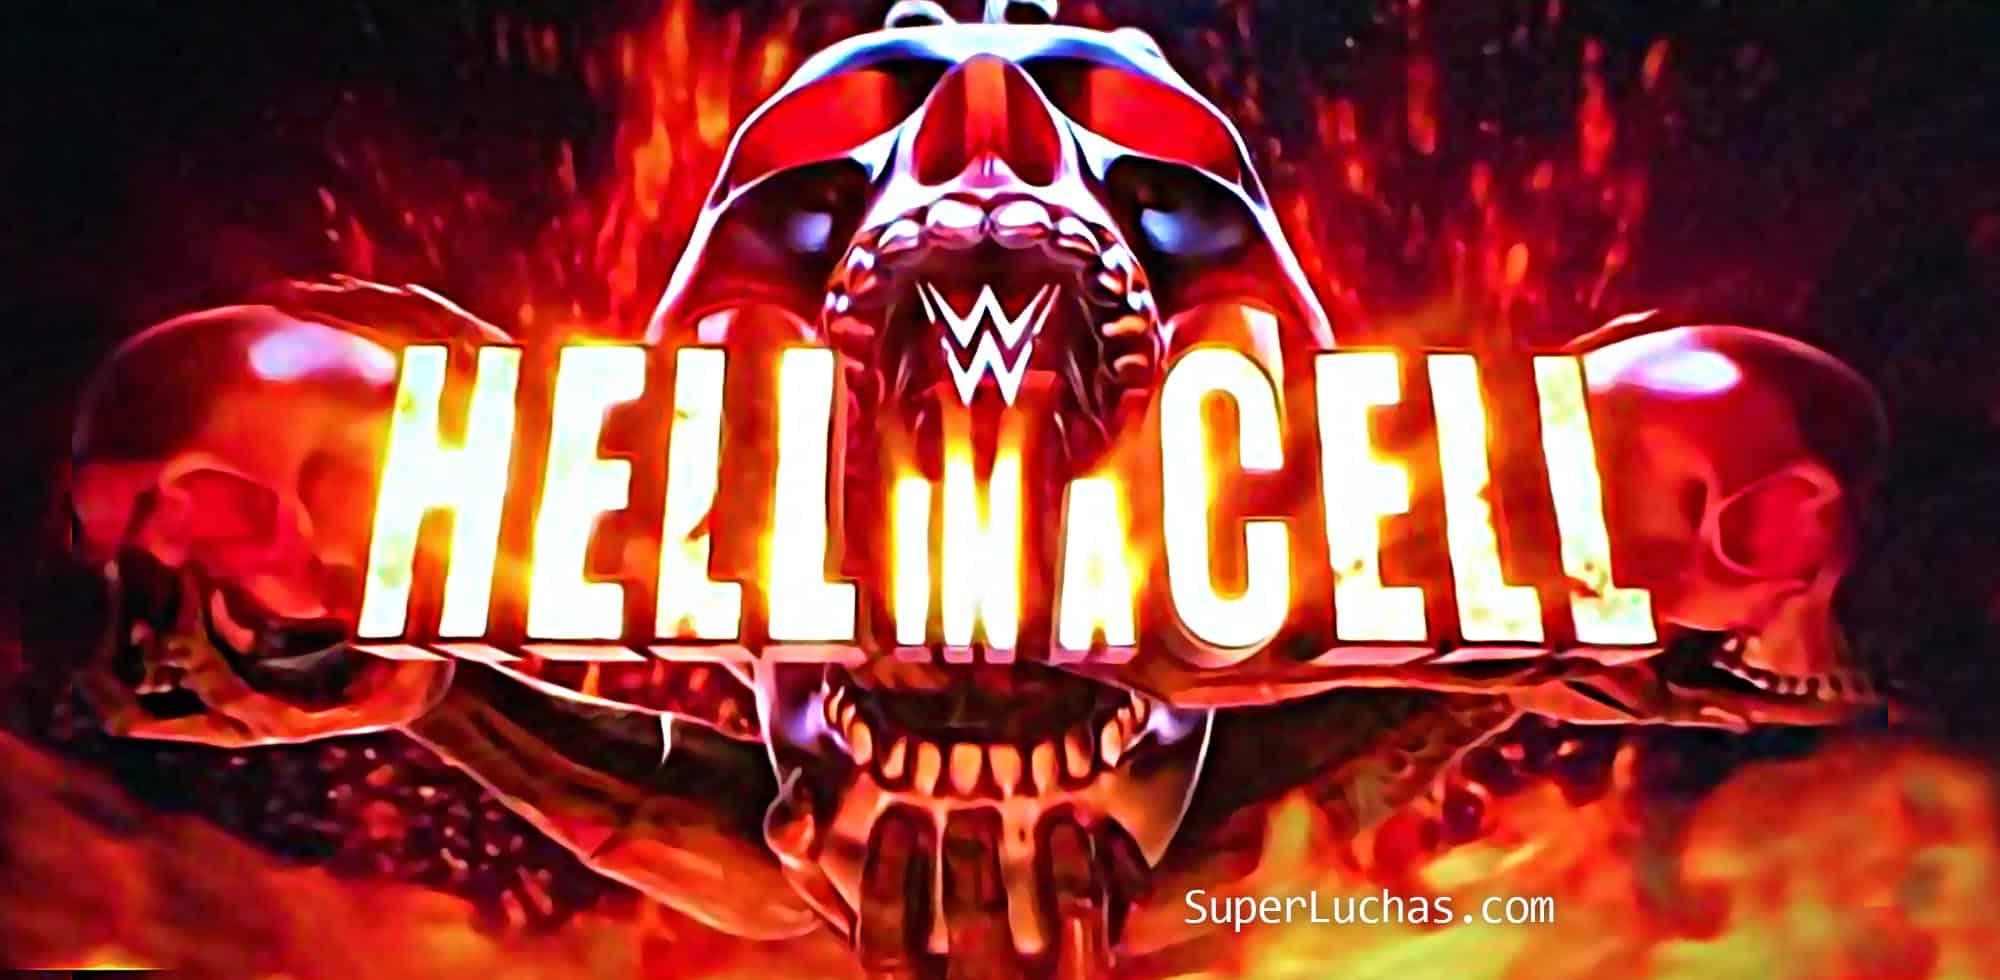 Hell in a Cell - WWE